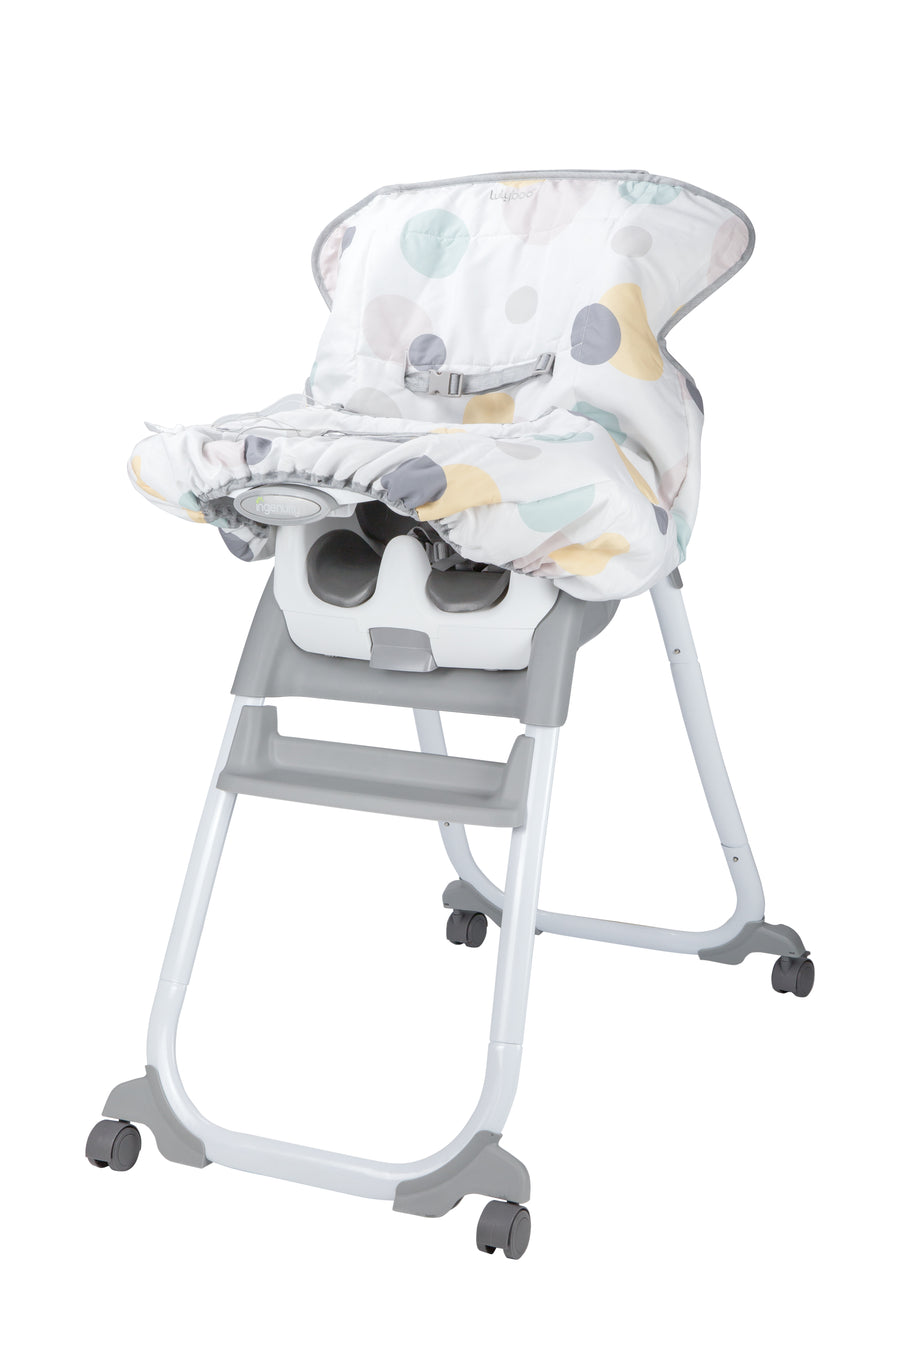 Shopping Cart & Highchair Cover - Bubble